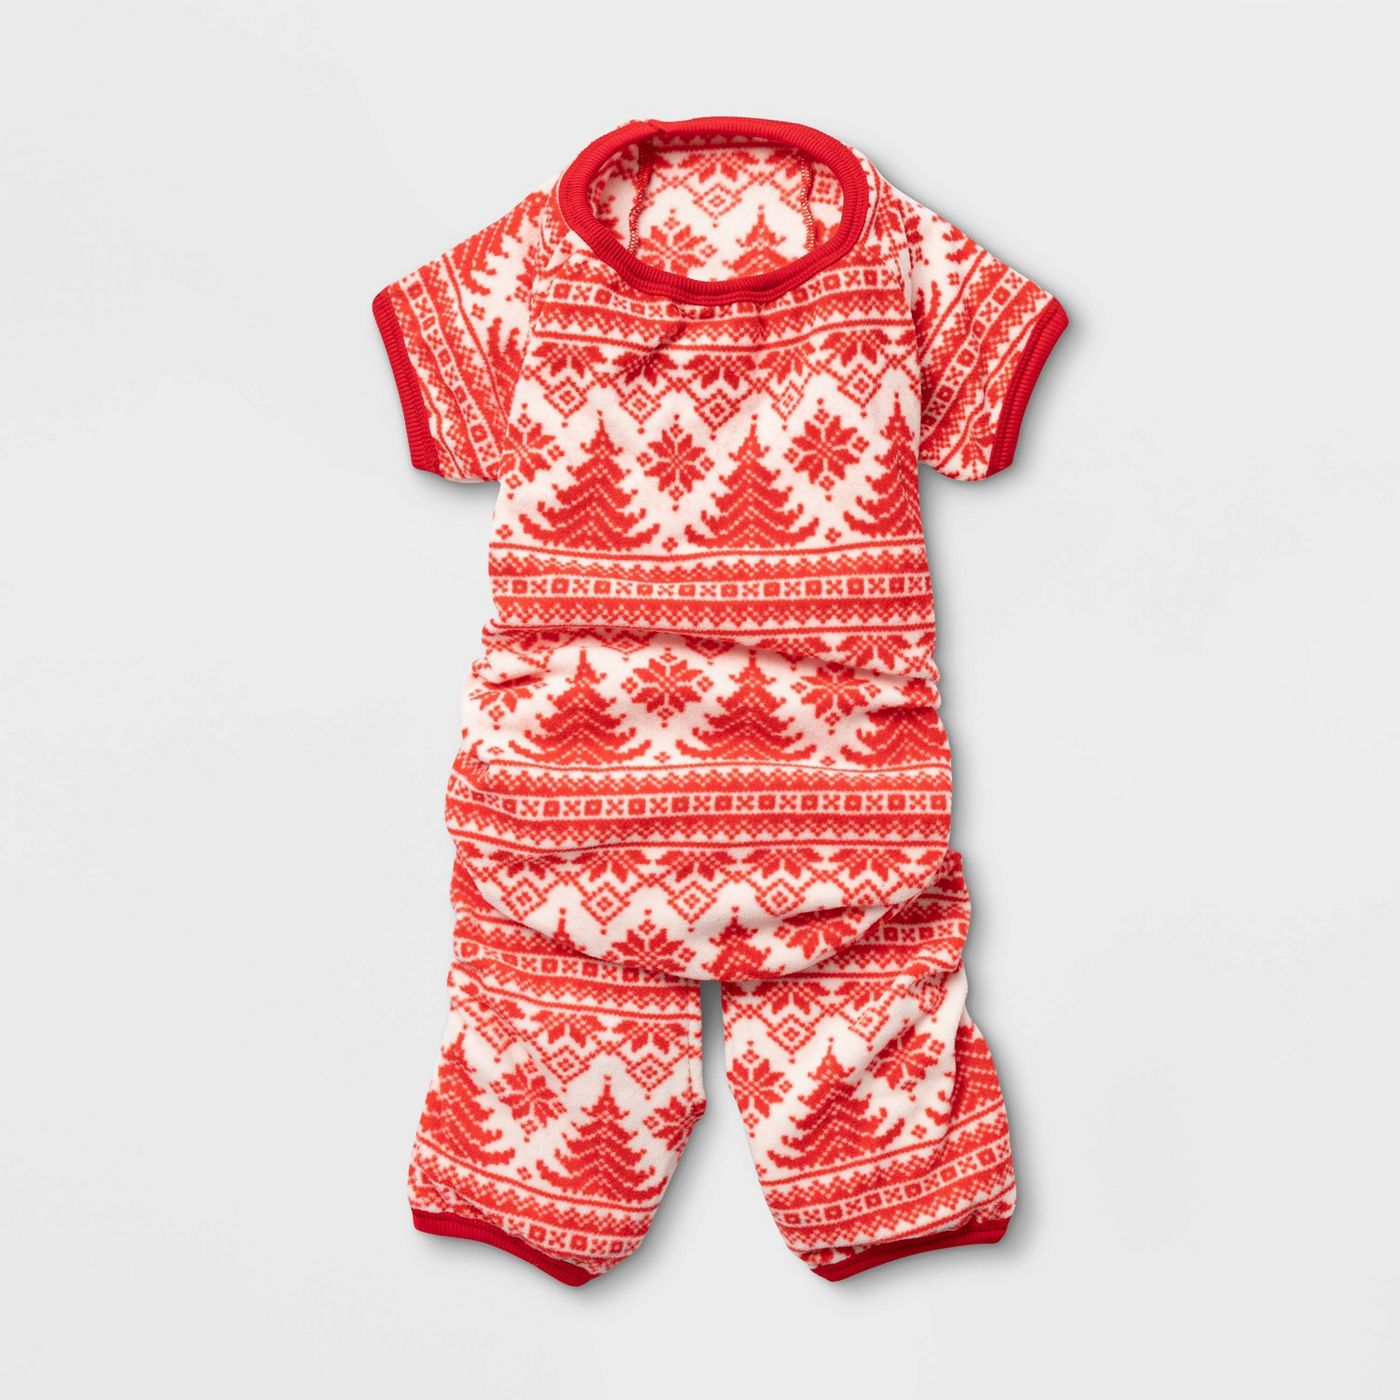 Fair Isle Holiday Dog and Cat Pajamas - Wondershop™ - image 2 of 4